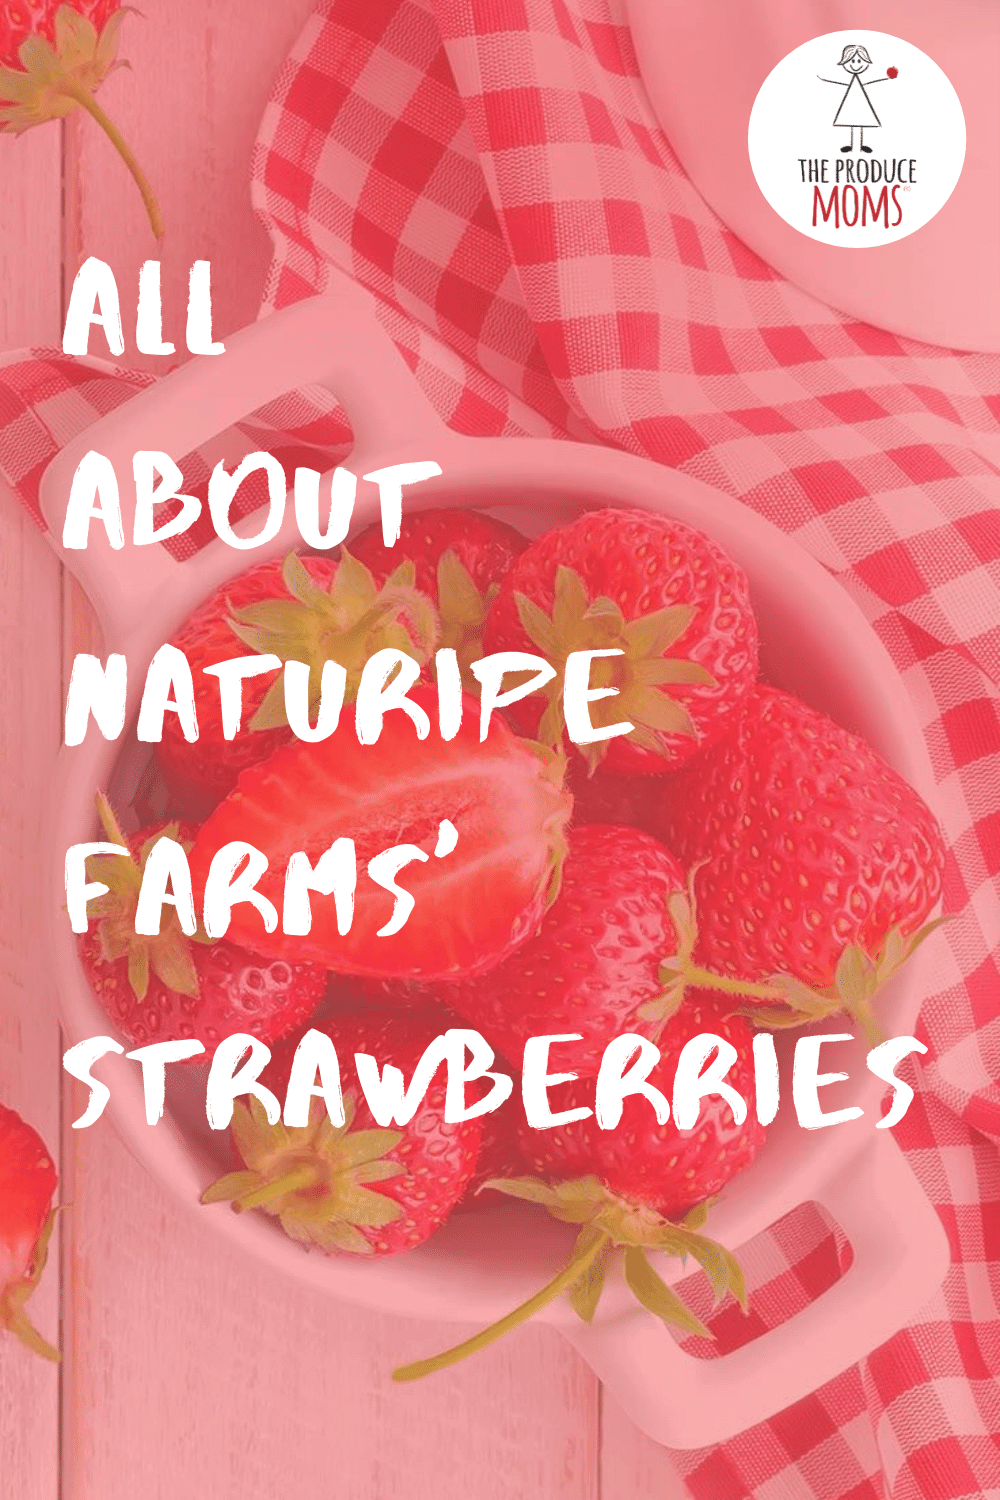 All About Naturipe Farms' Strawberries